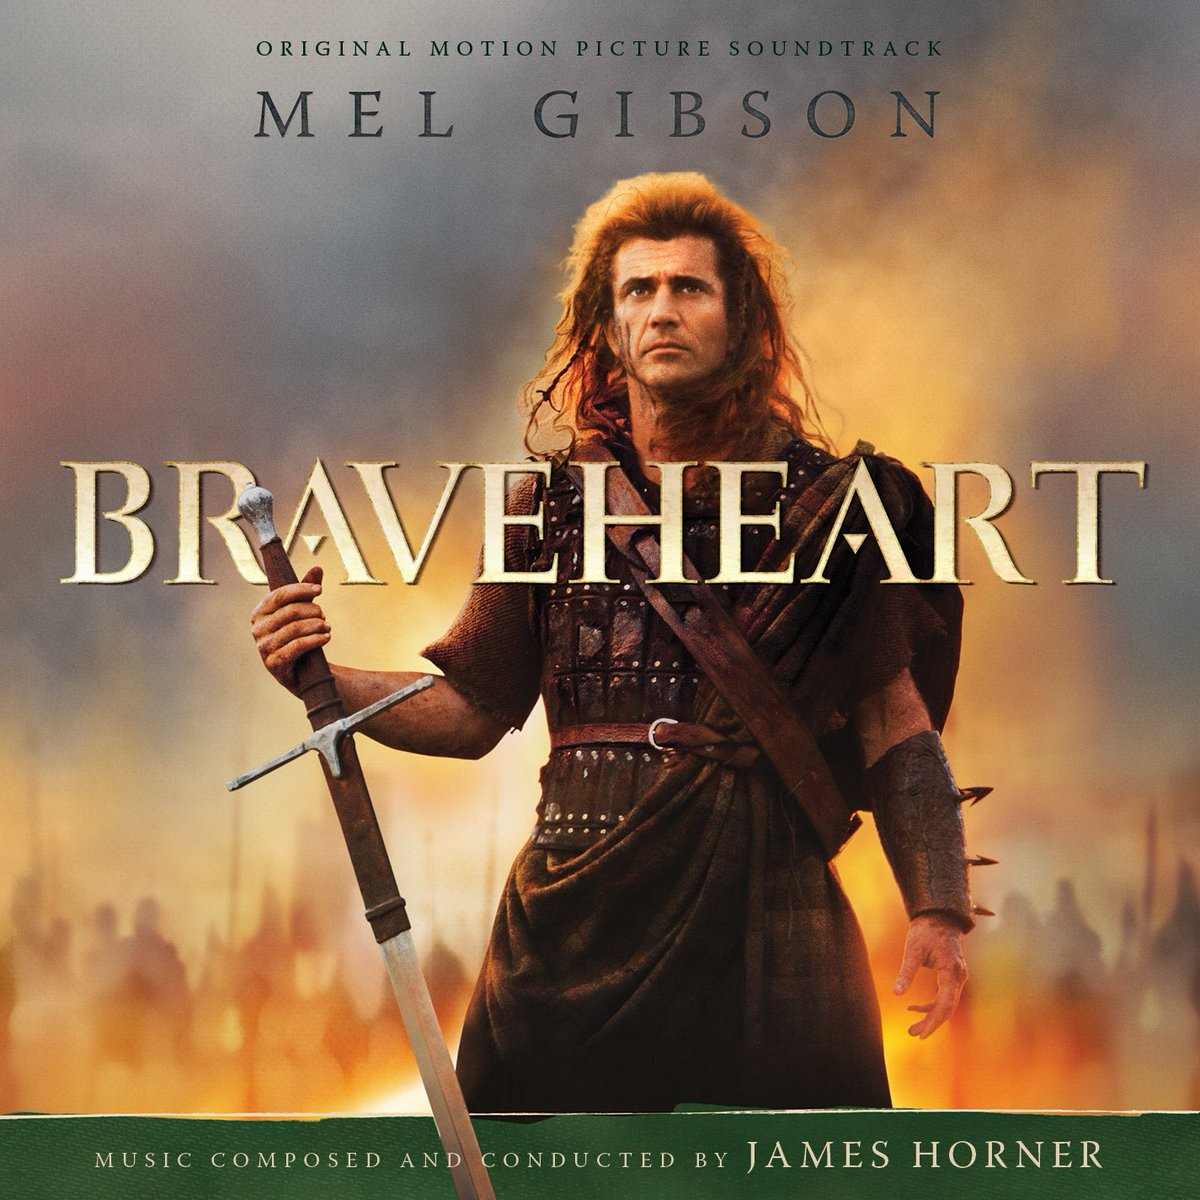 Now Playing @spyvinyl > @LaLaLandRecords limited edition release of James Horner's Braveheart. So good.